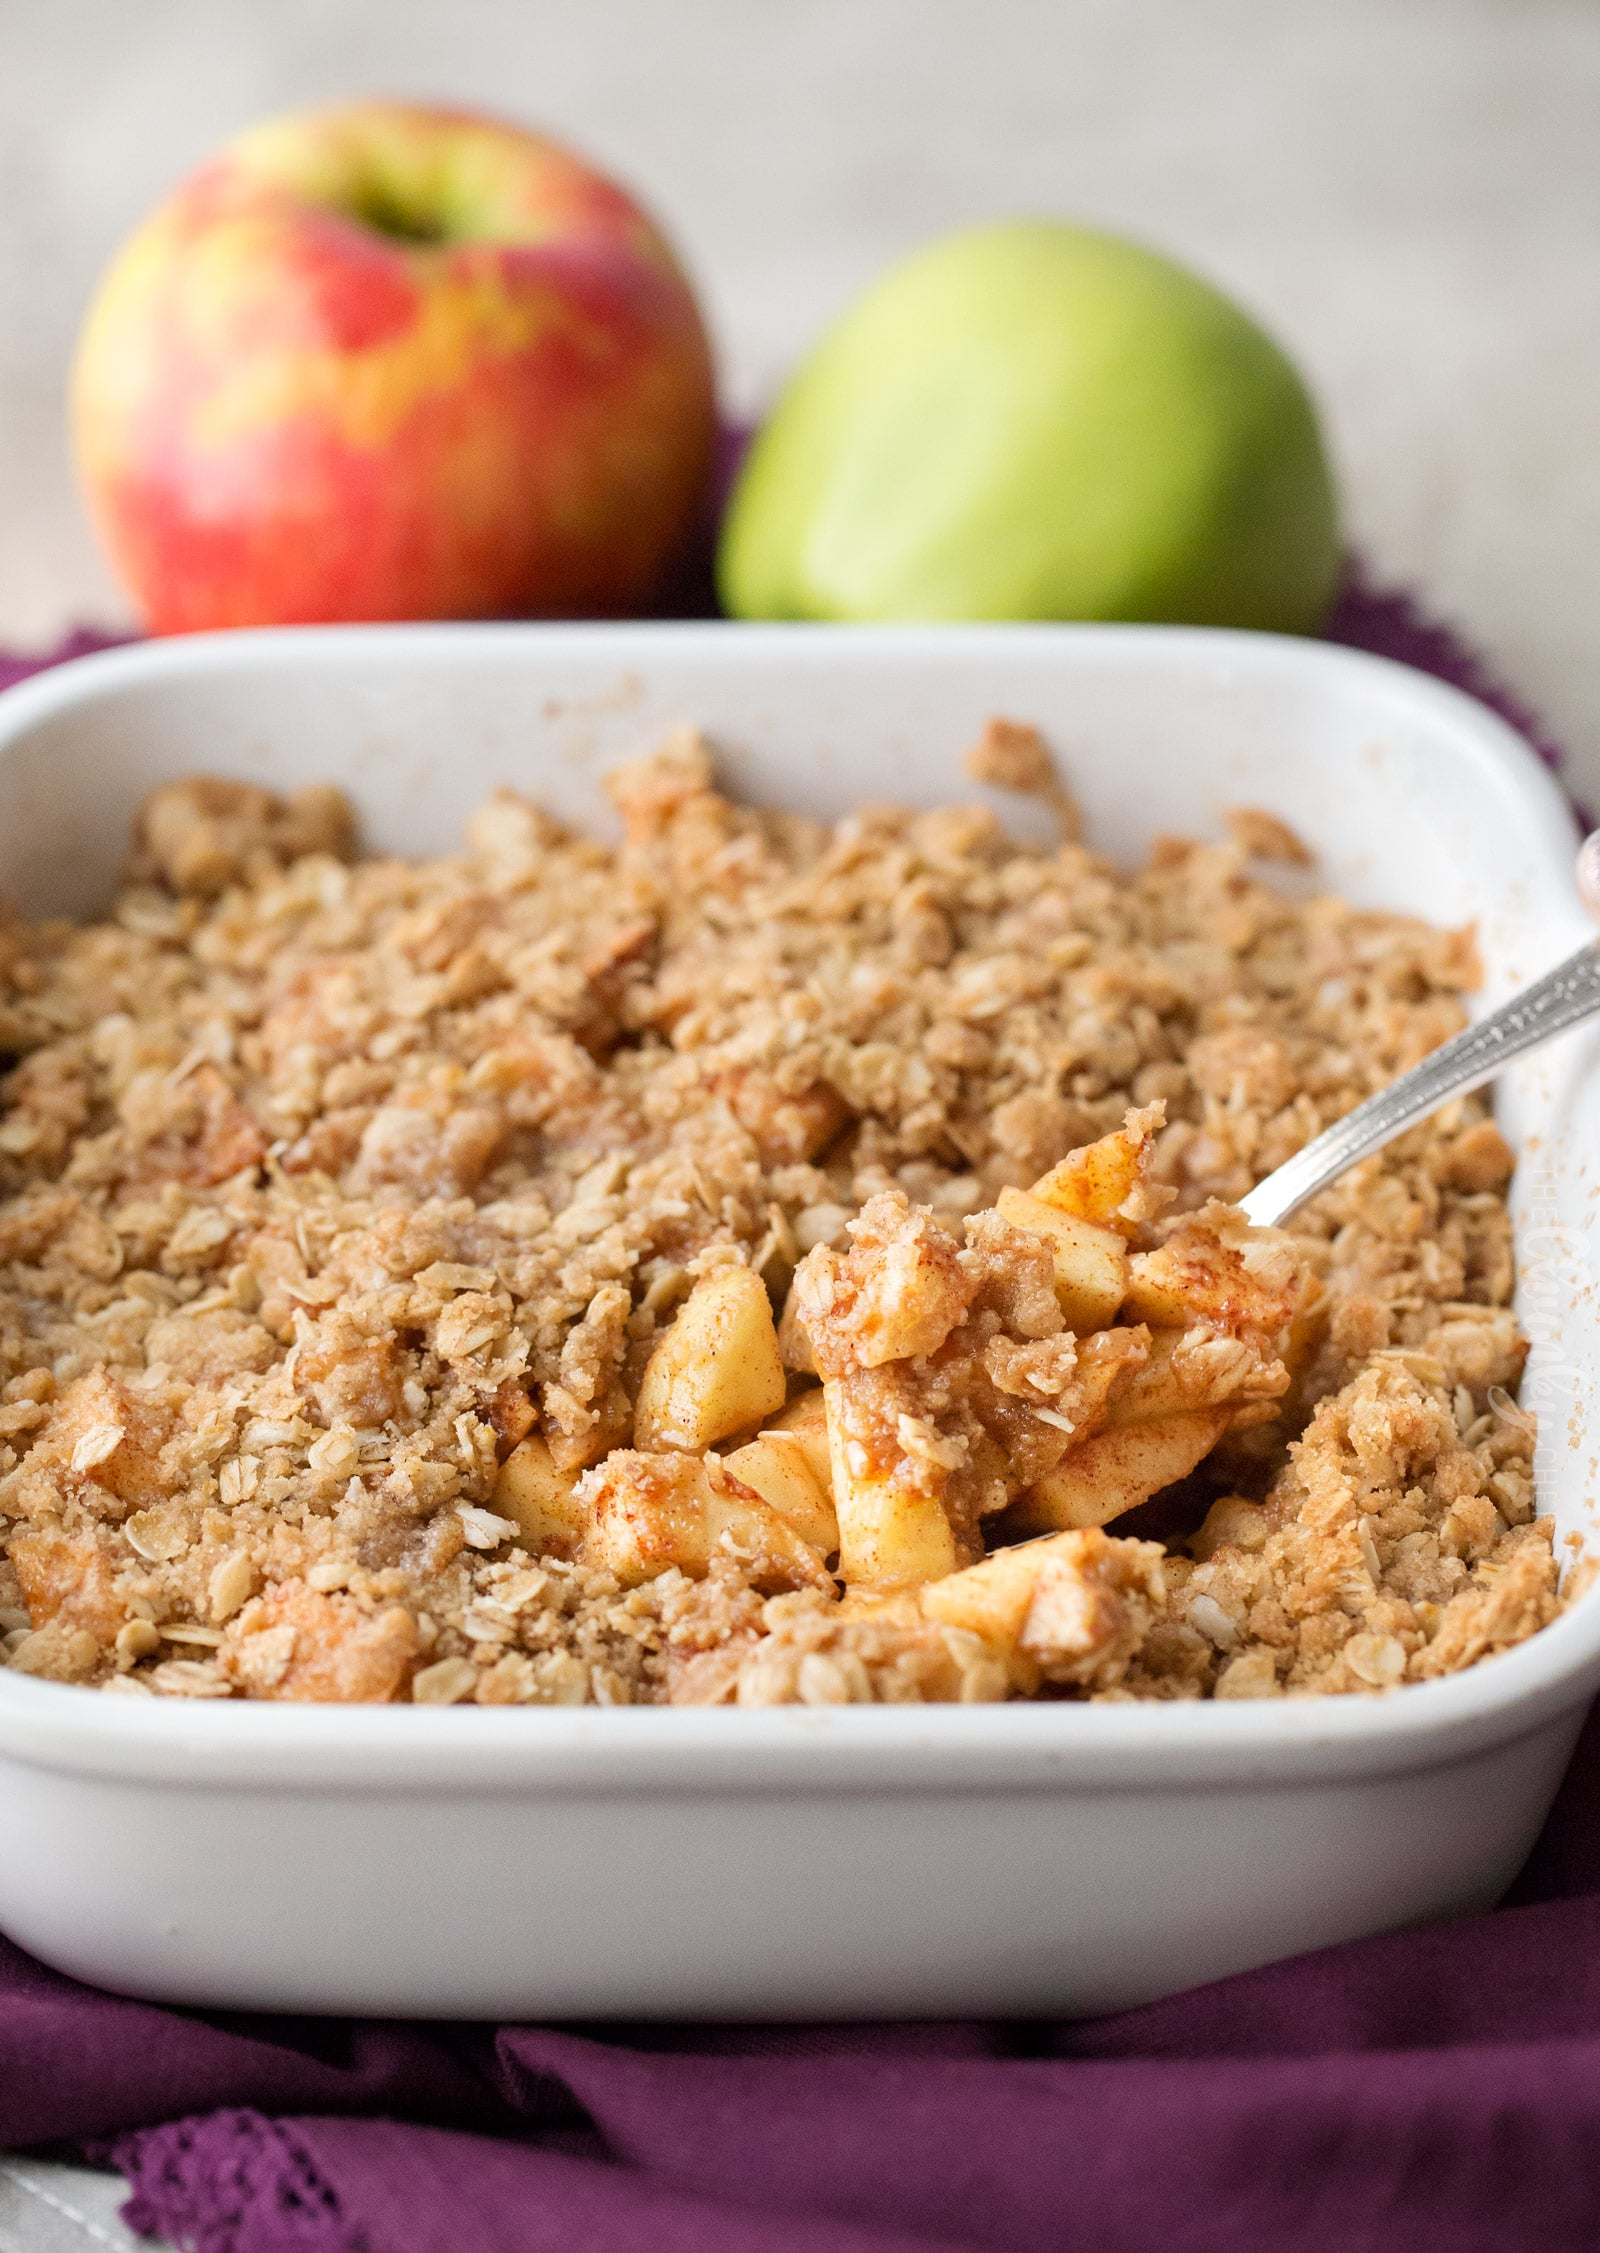 Picture of a spoon scooping some apple crisp out of the baking dish.